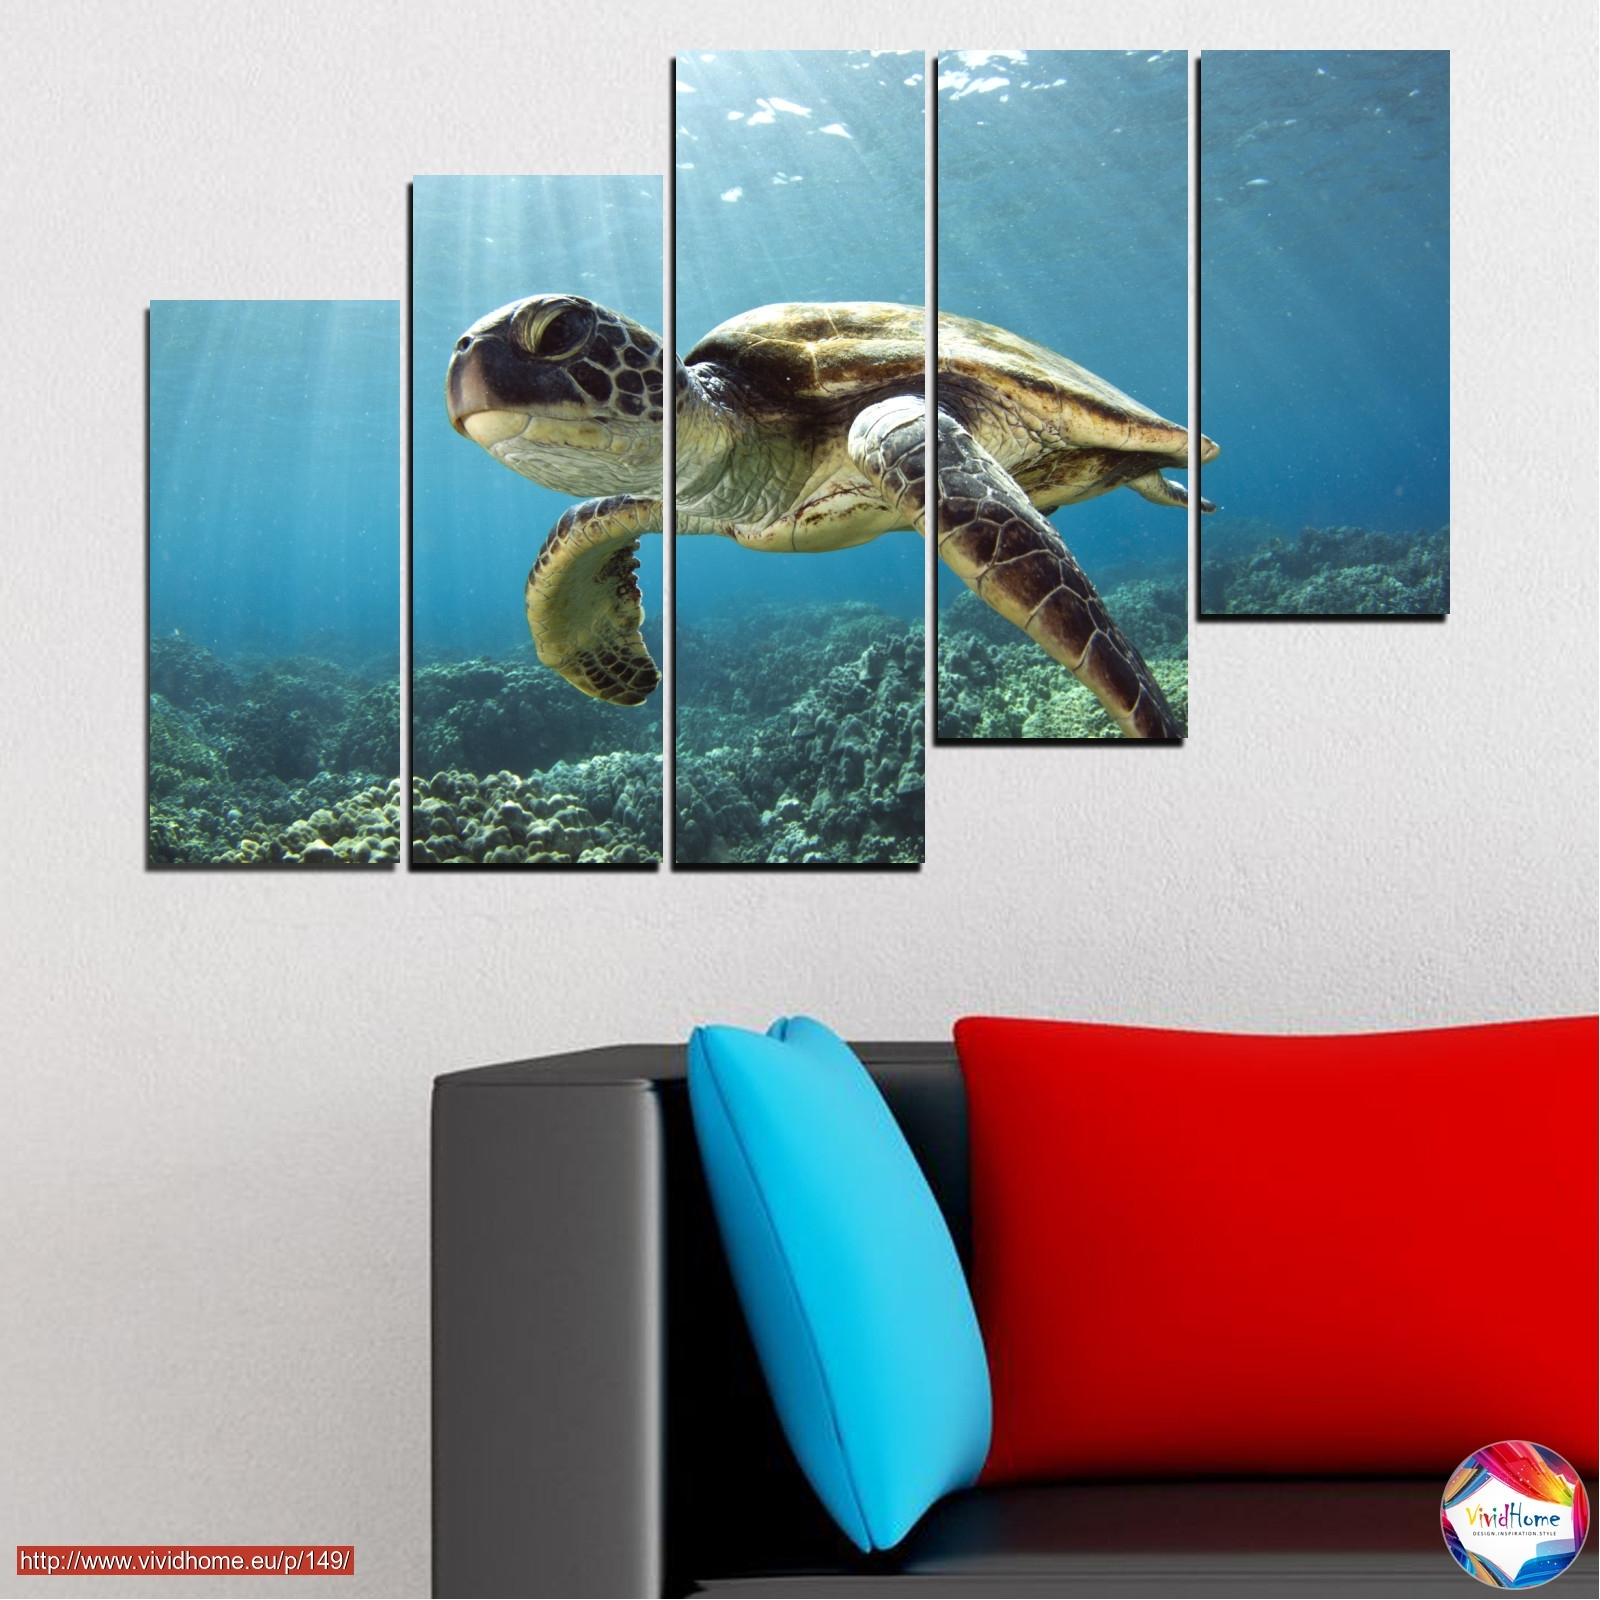 Landscape, Water, Sea, Turtle ?0149 With Regard To Most Up To Date Sea Turtle Canvas Wall Art (Gallery 8 of 20)